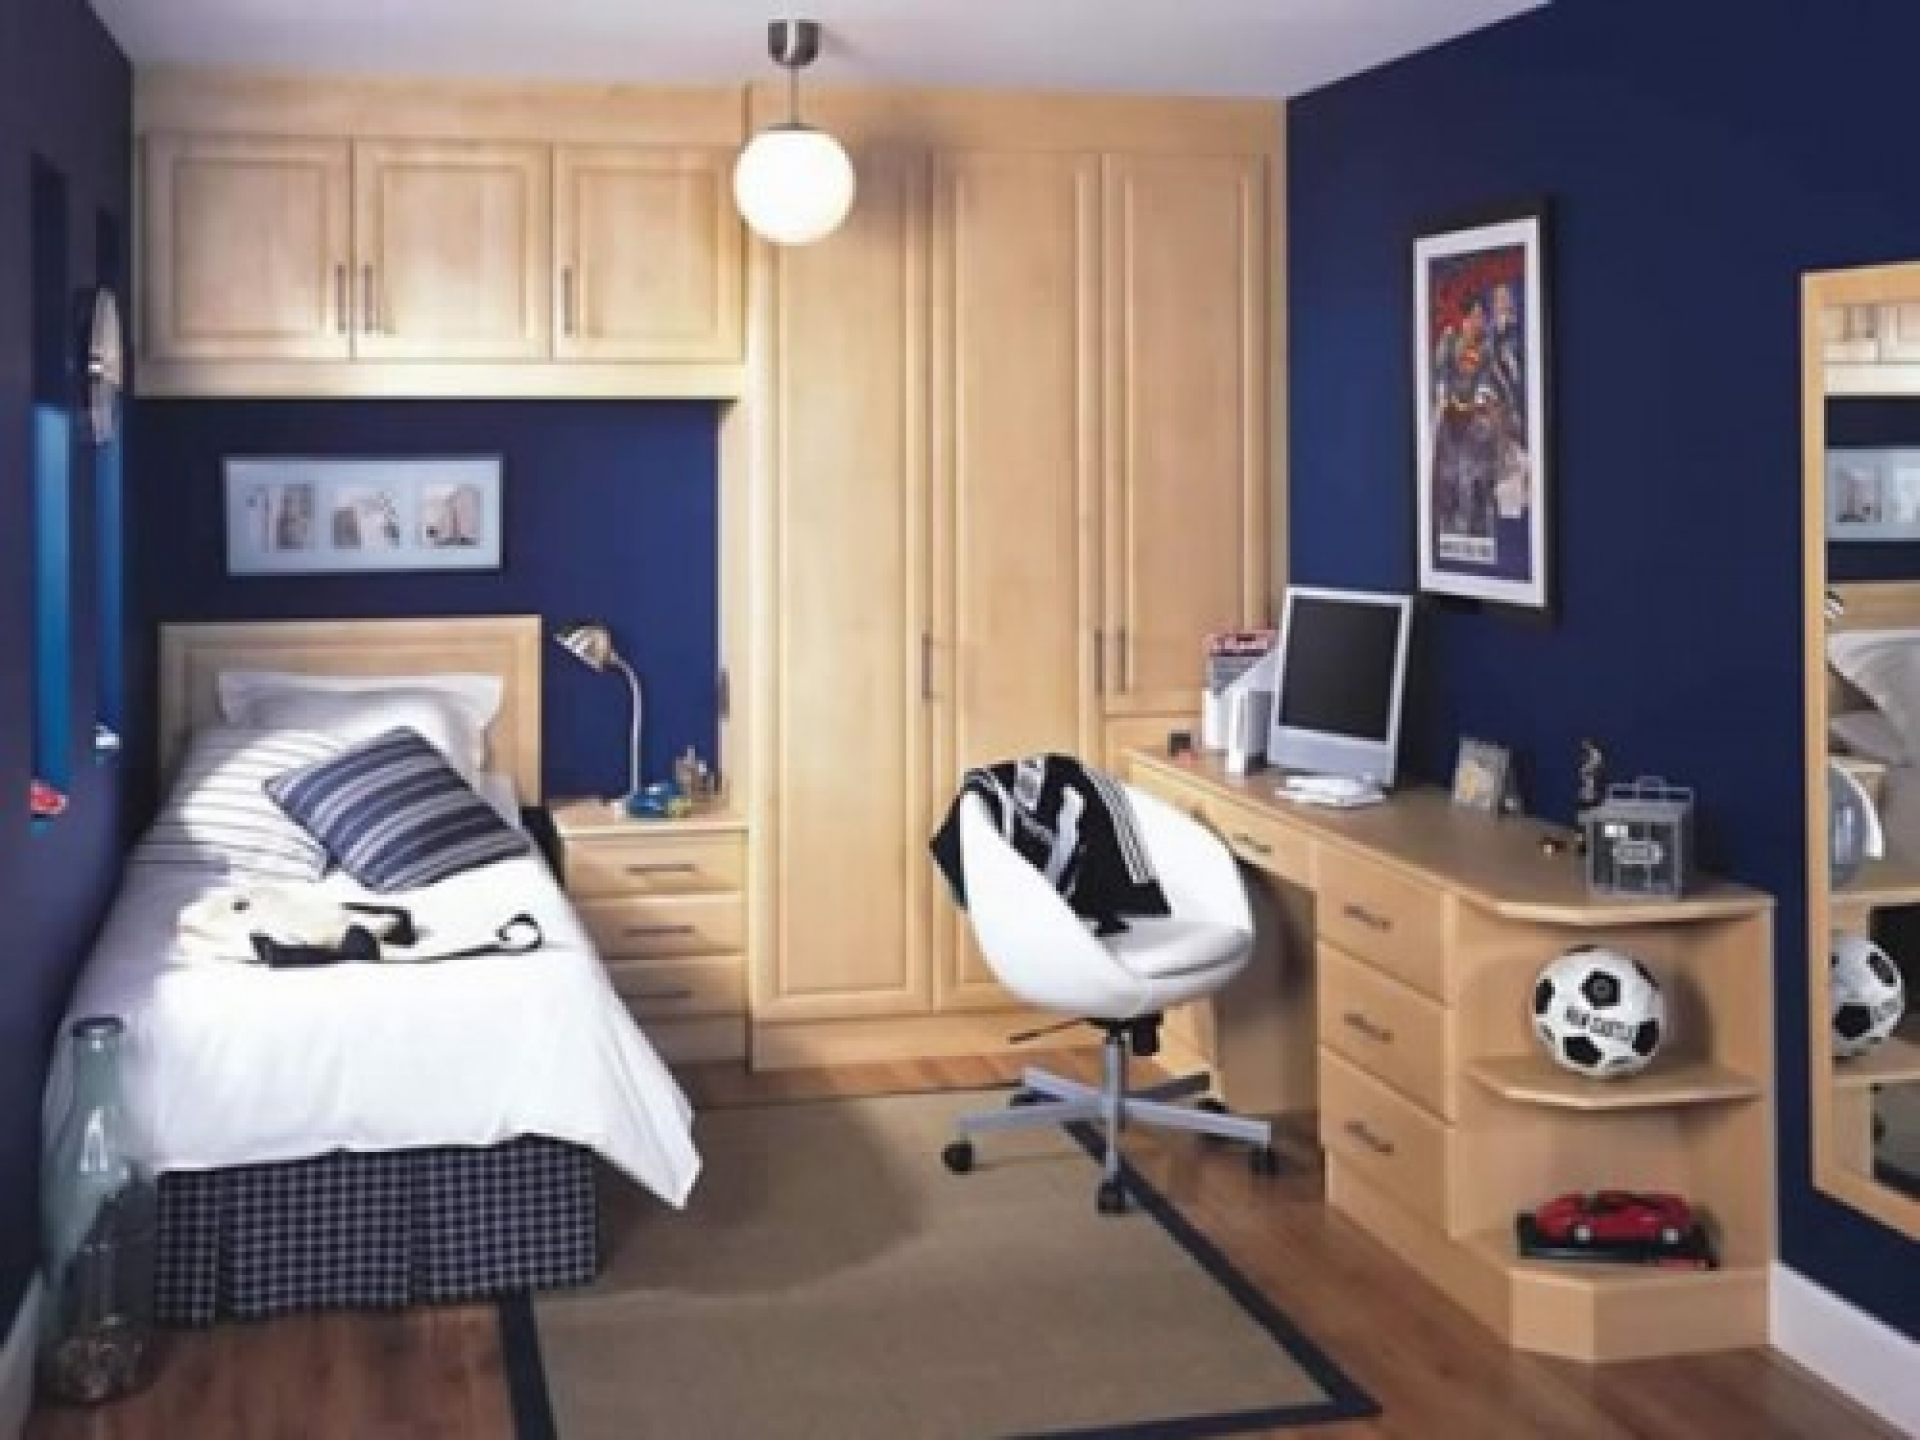 Small Fitted Bedroom Furniture Ideas The Best Inspiration For Bedrooms Built In Modern Sets Distressed King Cottage White Antique Wardrobe Product Oak Apppie Org